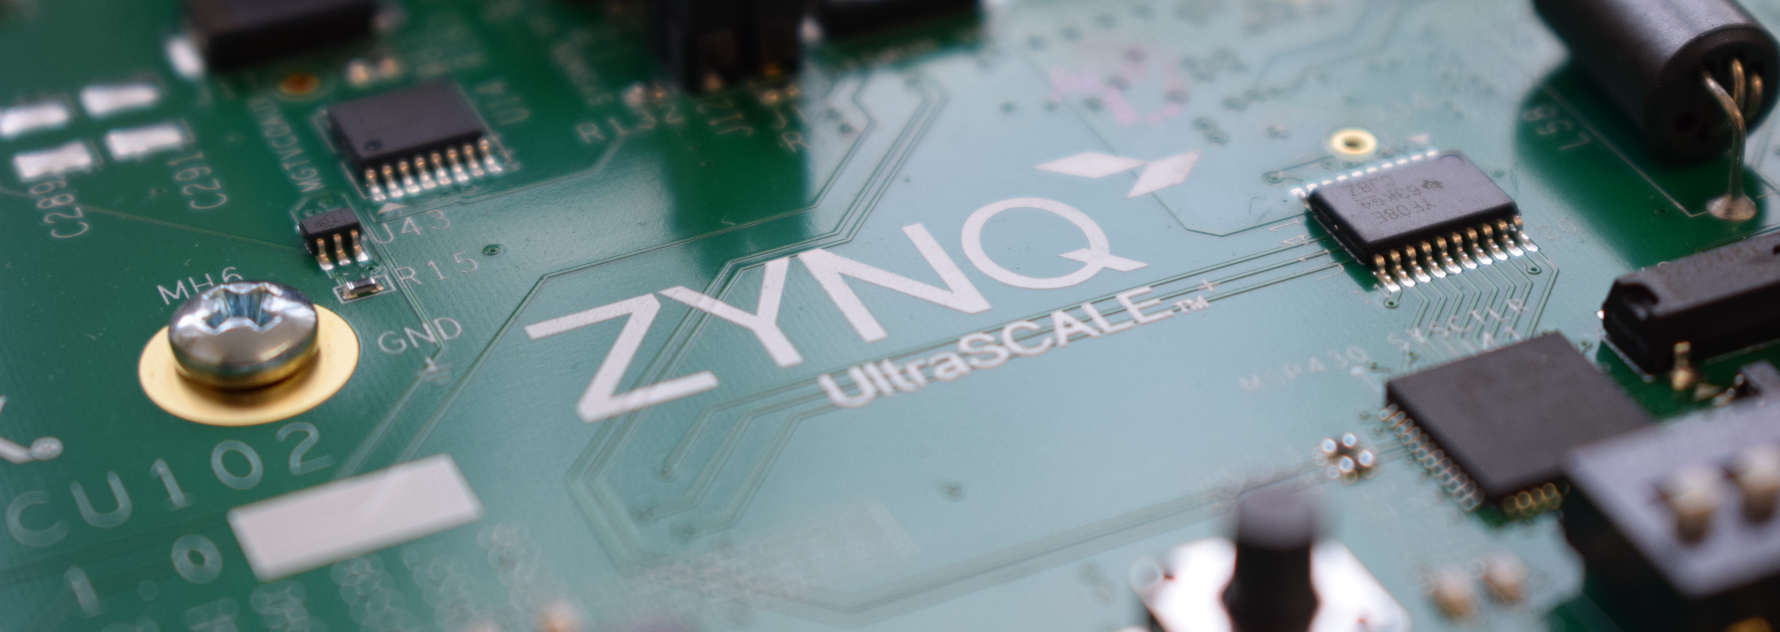 Starware Design Ltd - Build and deploy Yocto Linux on the Xilinx